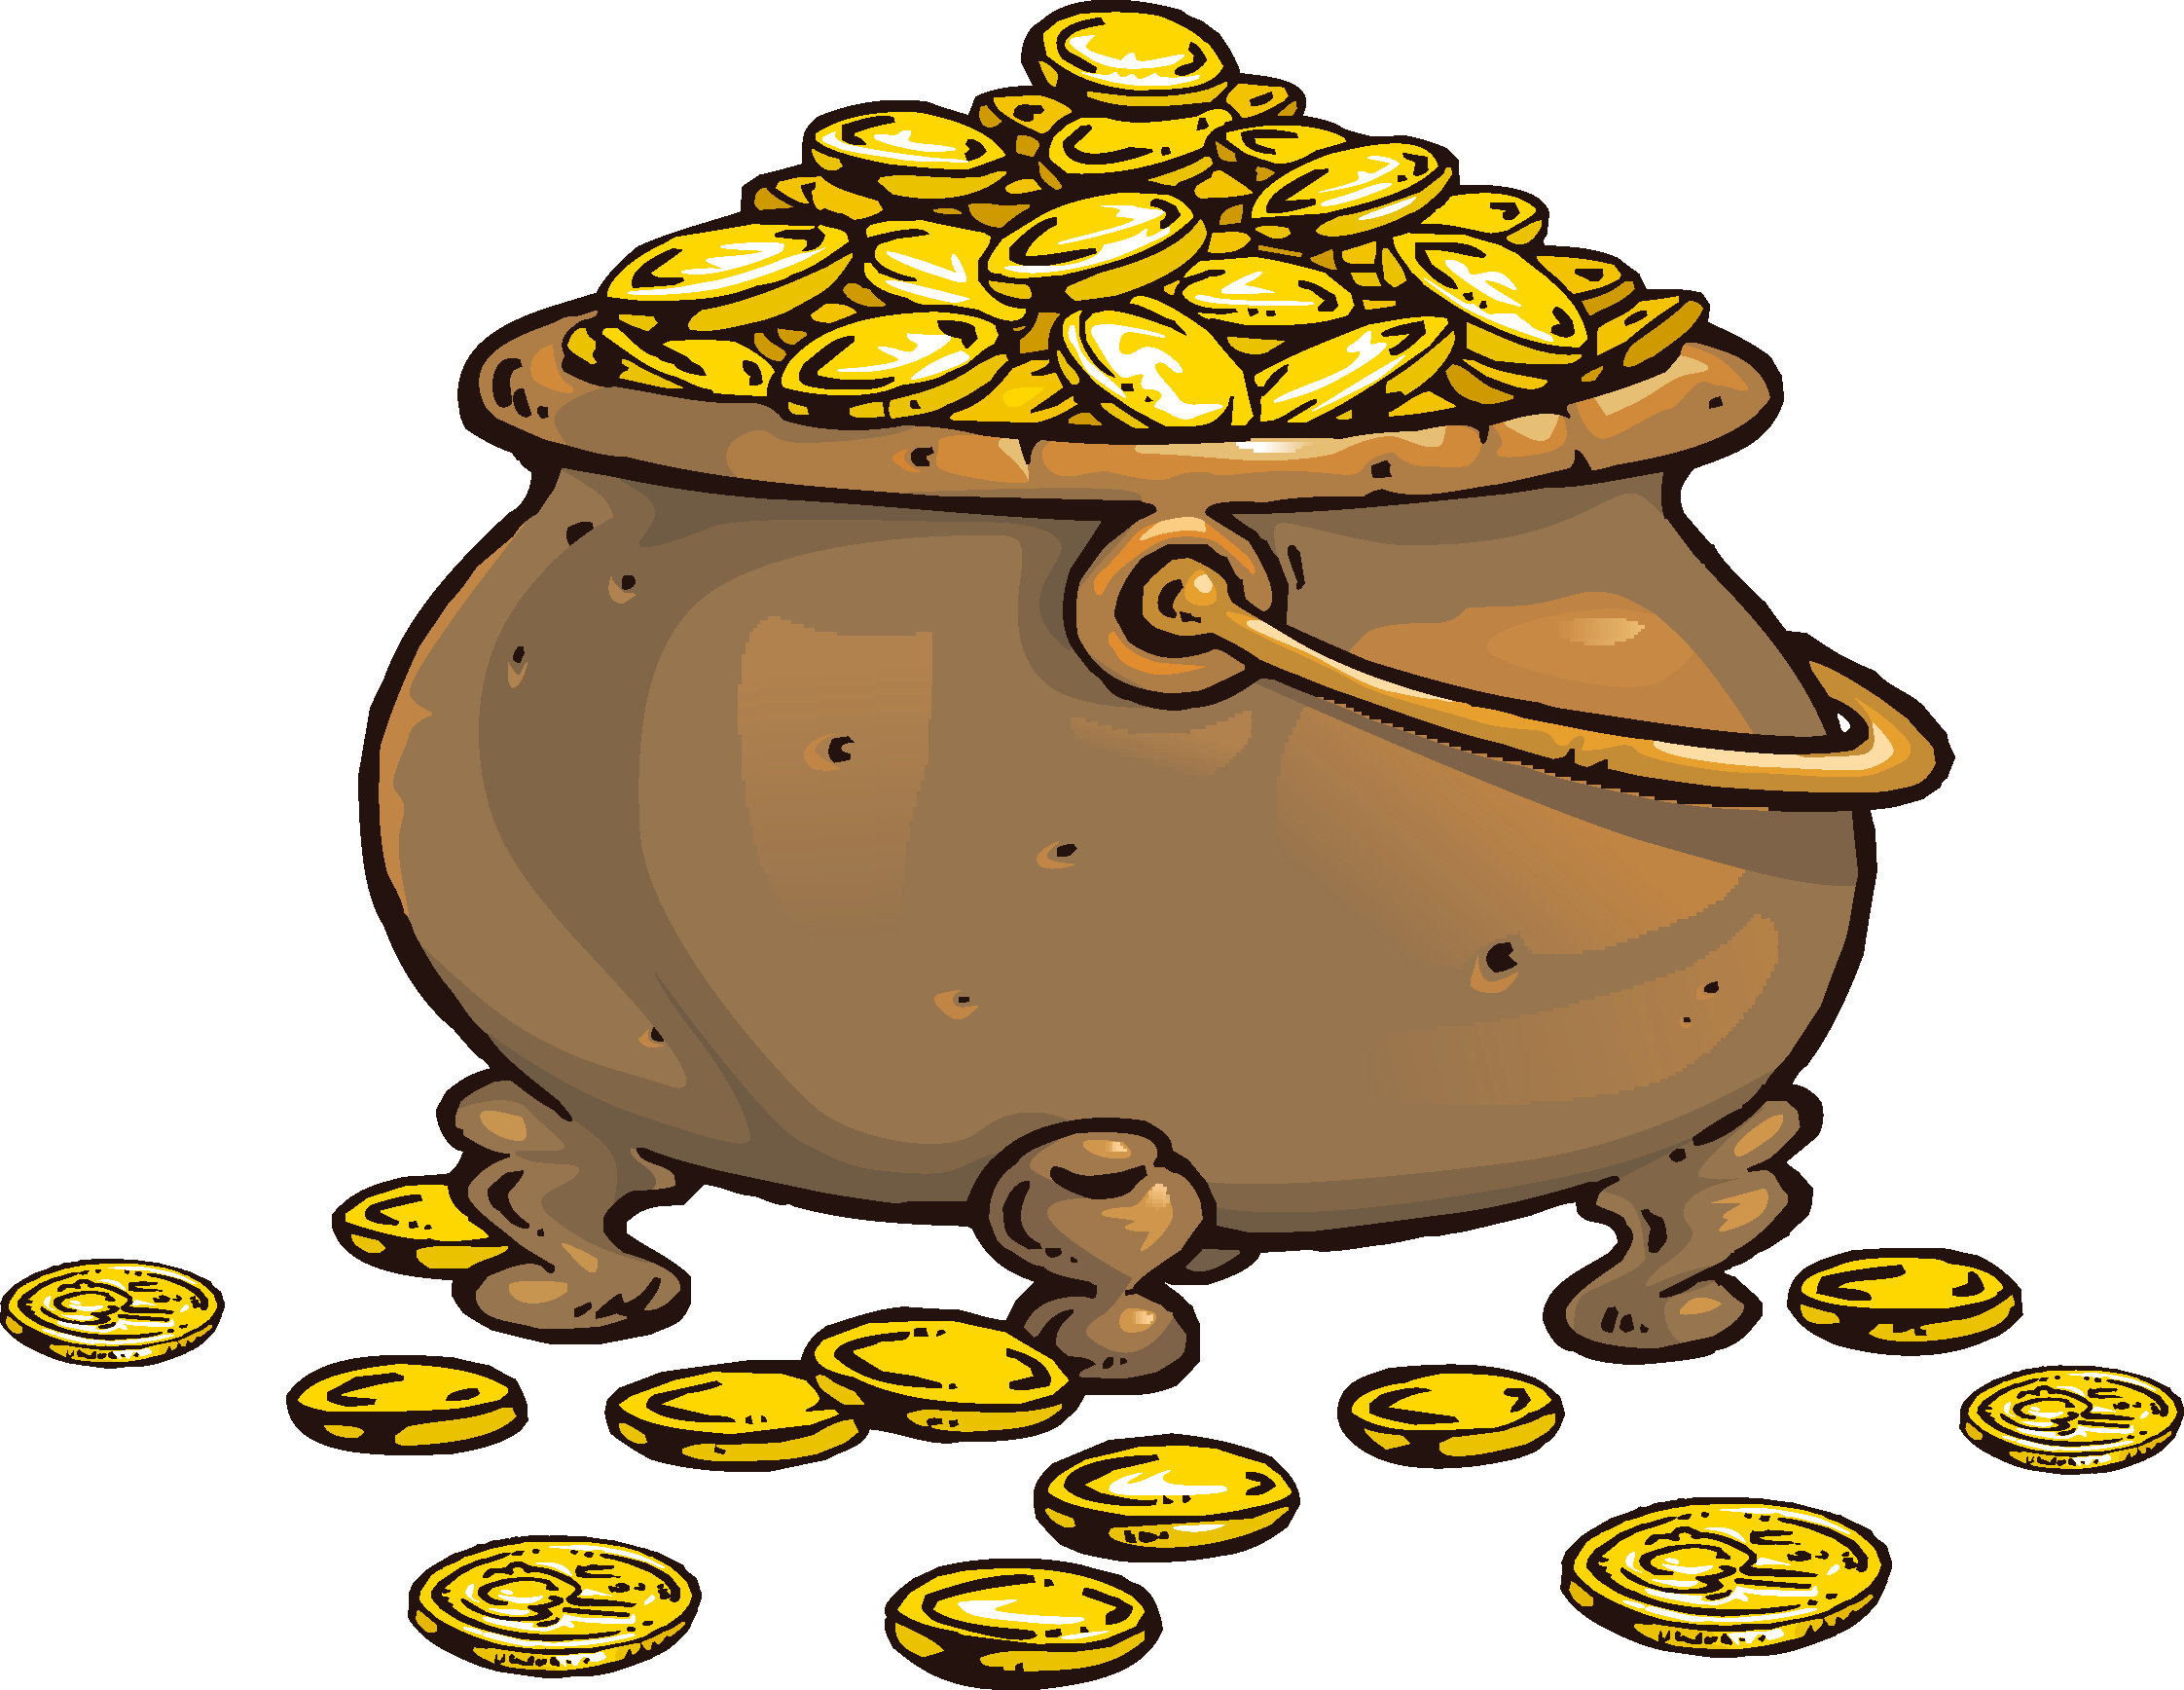 gold coins clipart at getdrawings com free for personal use gold rh getdrawings com clipart construction clipart construccion